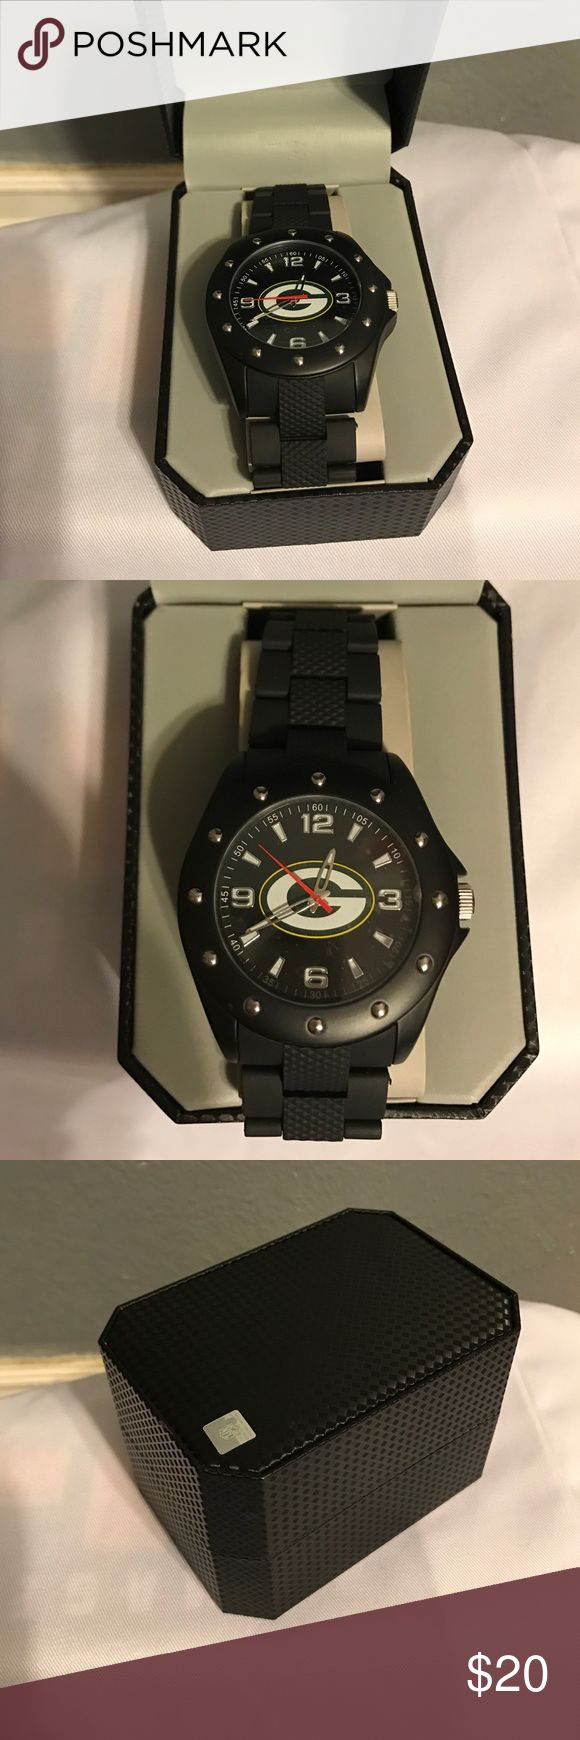 Green Bay Packers game time watch Never been worn. New in box. Accessories Watches